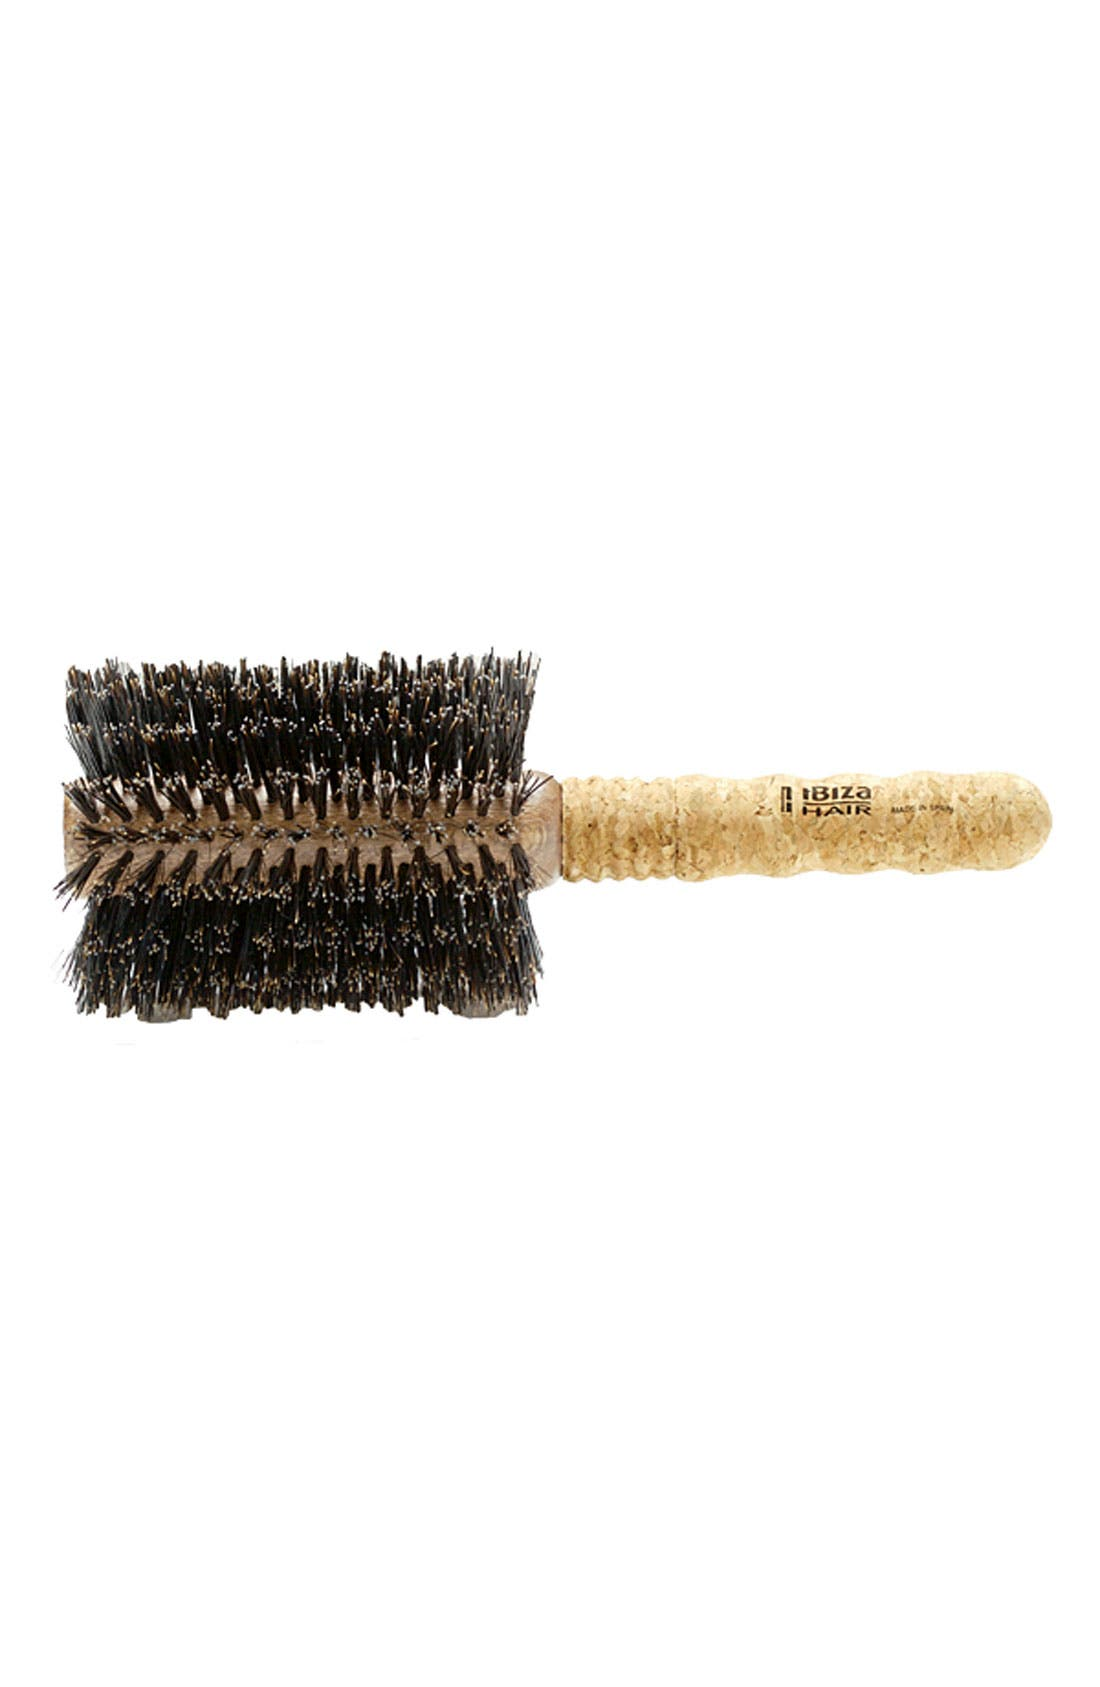 Ibiza Collection Extended Cork Round Brush,                             Main thumbnail 1, color,                             NO COLOR